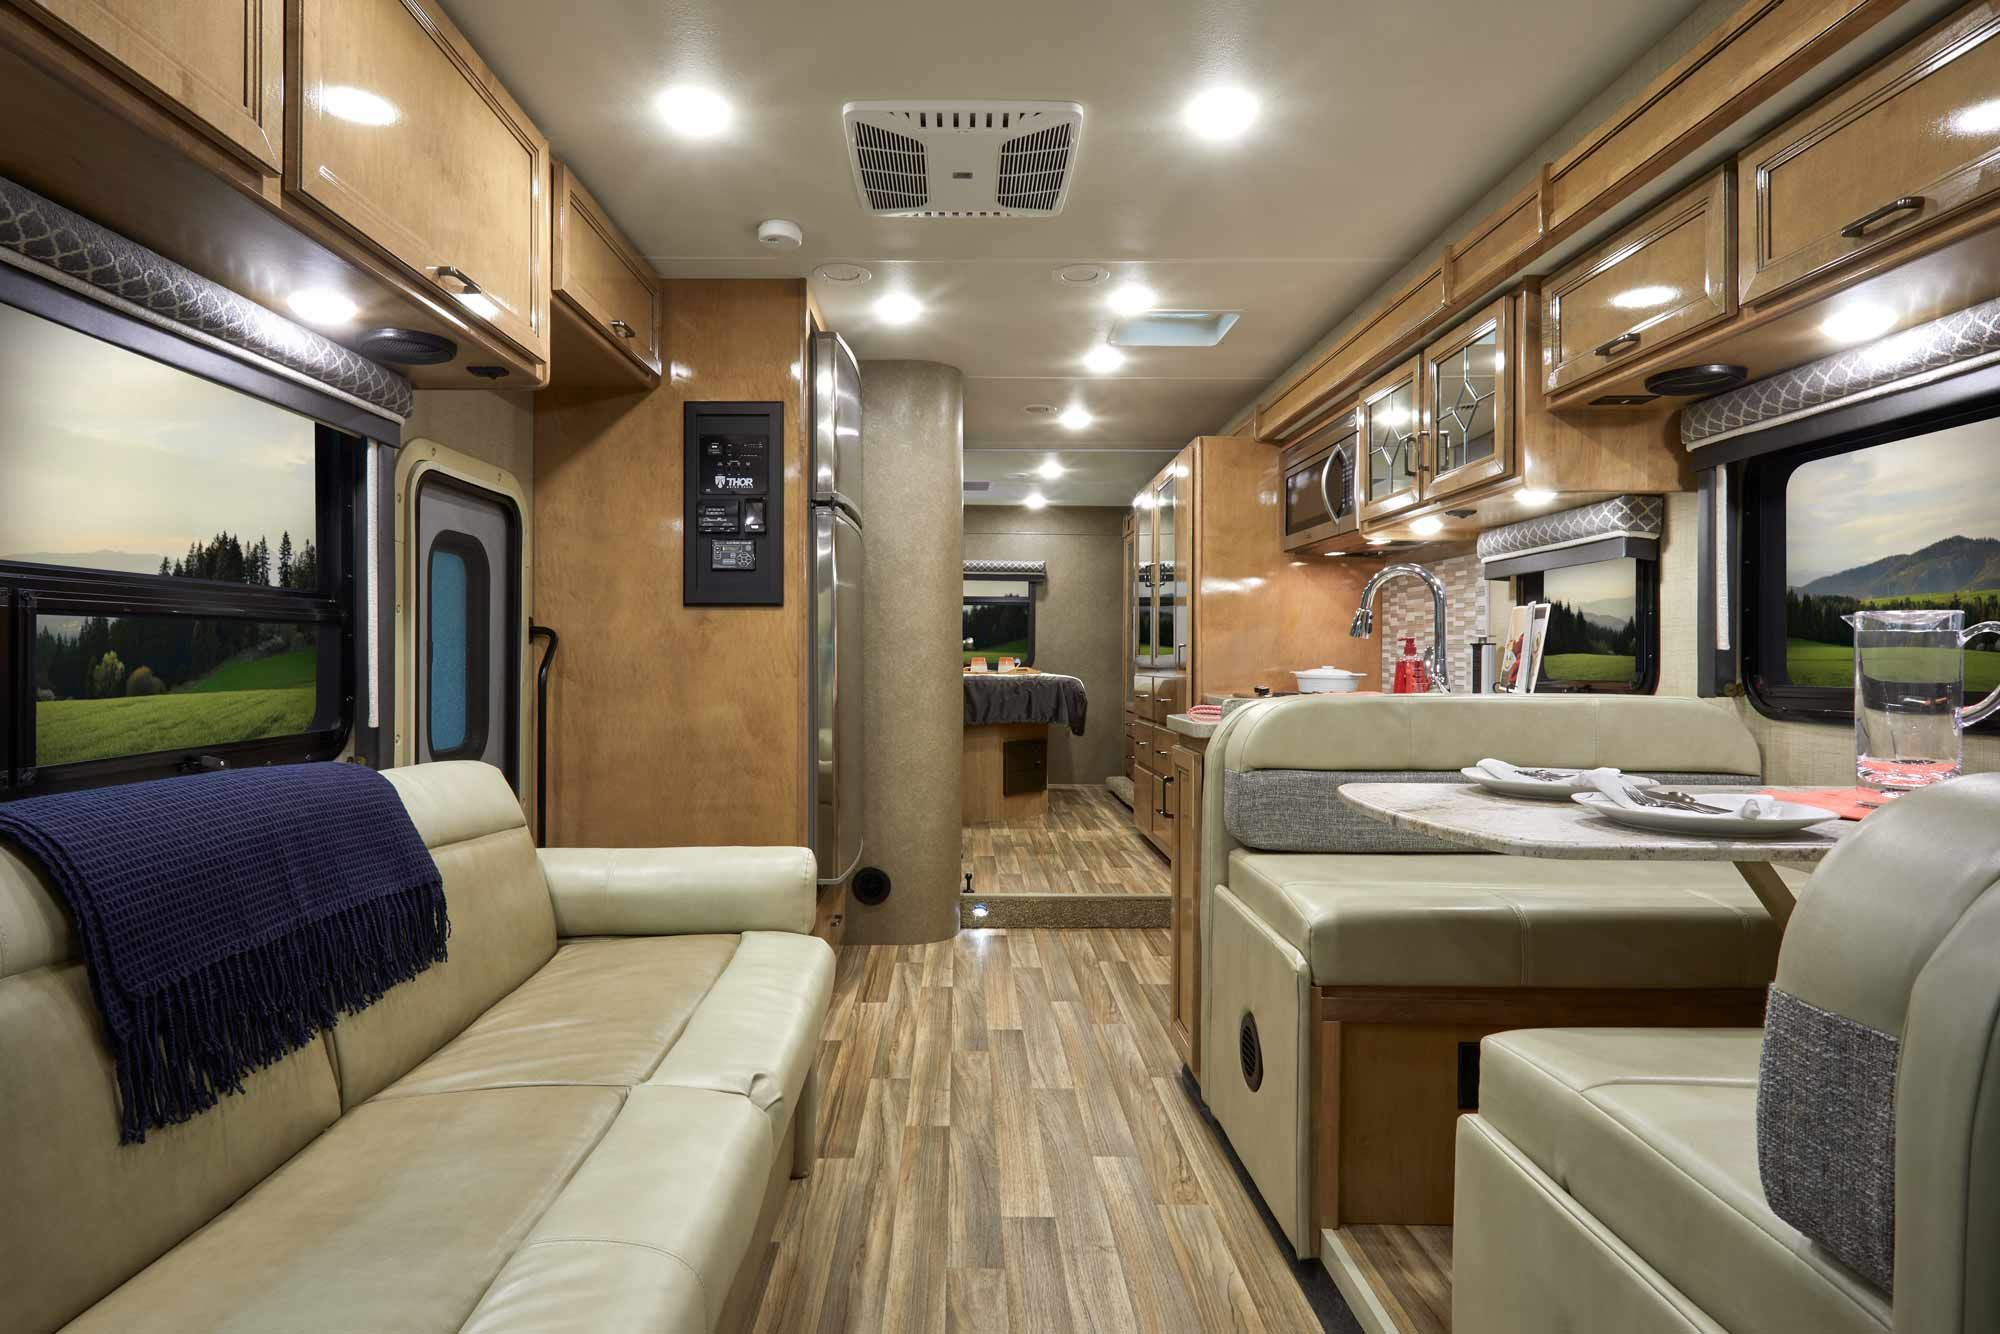 2019 Quantum Ws31 One Of Our Longest And Largest Class C Rvs